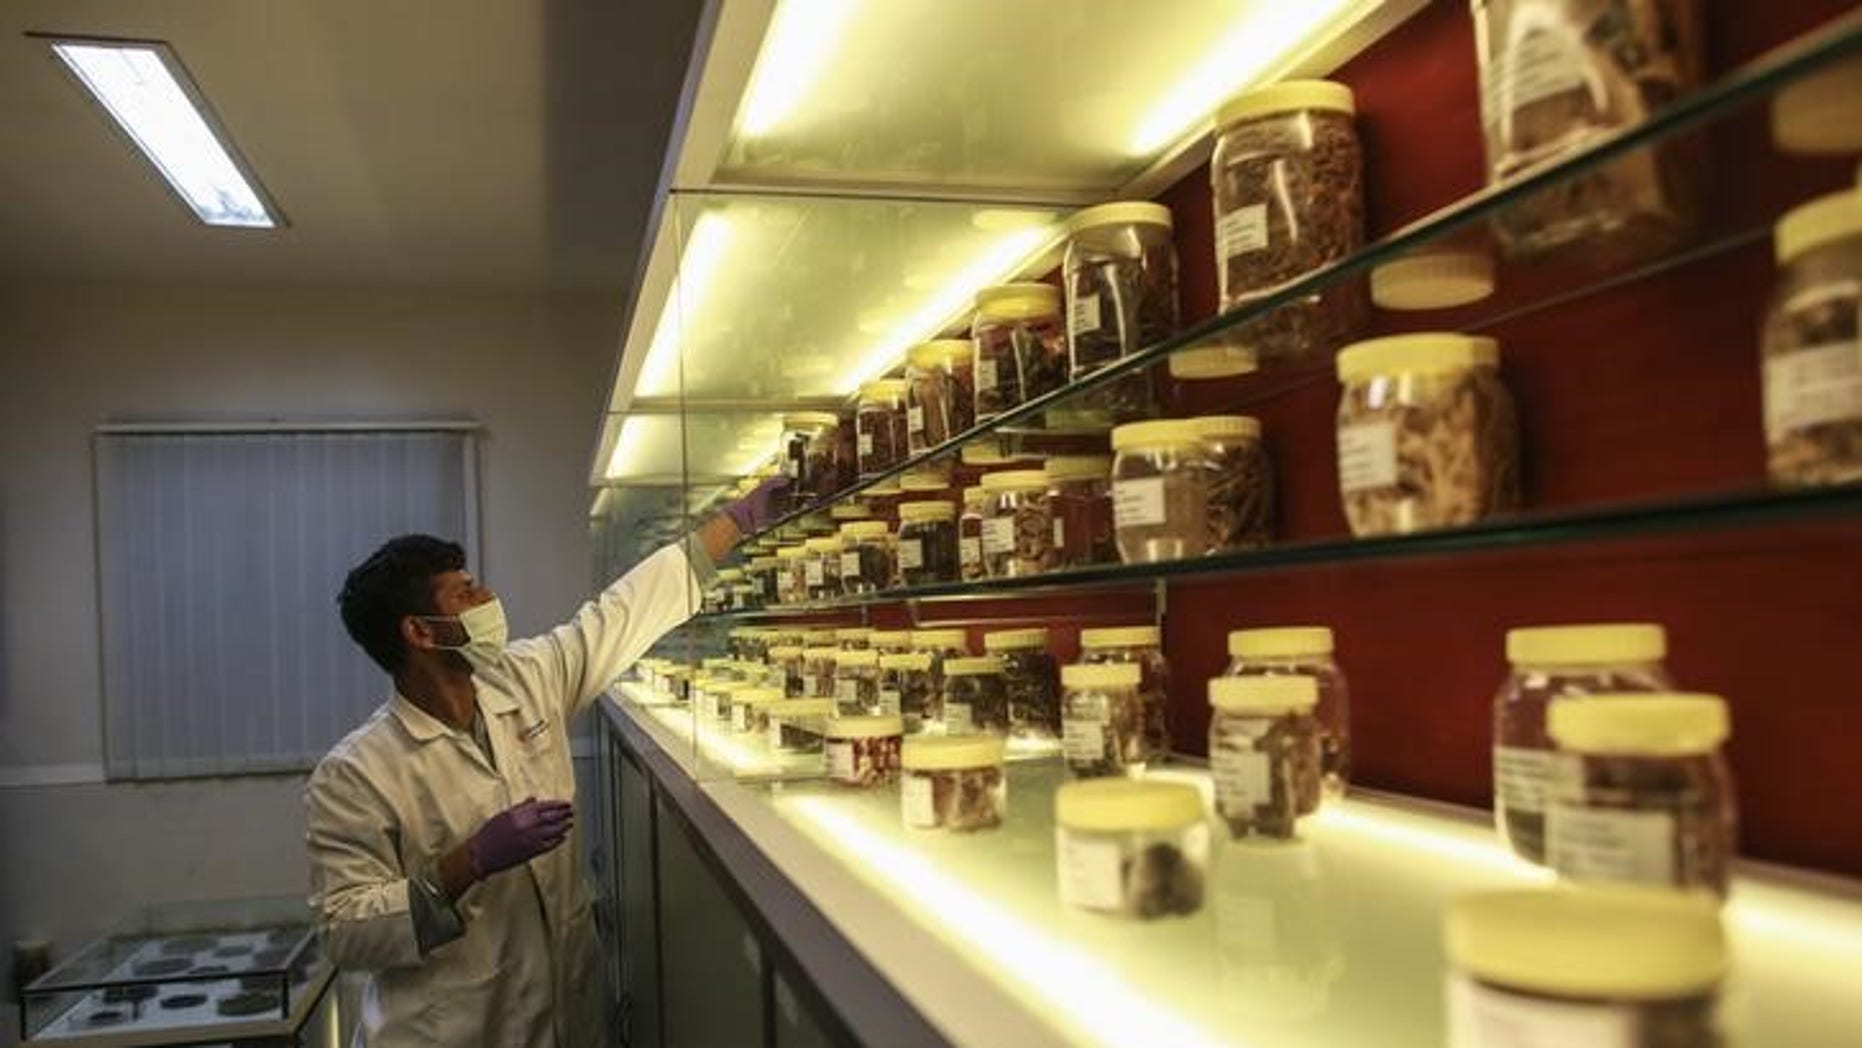 An employee looks for a herbal medicine sample inside a laboratory at Piramal's Research Centre in Mumbai August 11, 2014. REUTERS/Danish Siddiqui